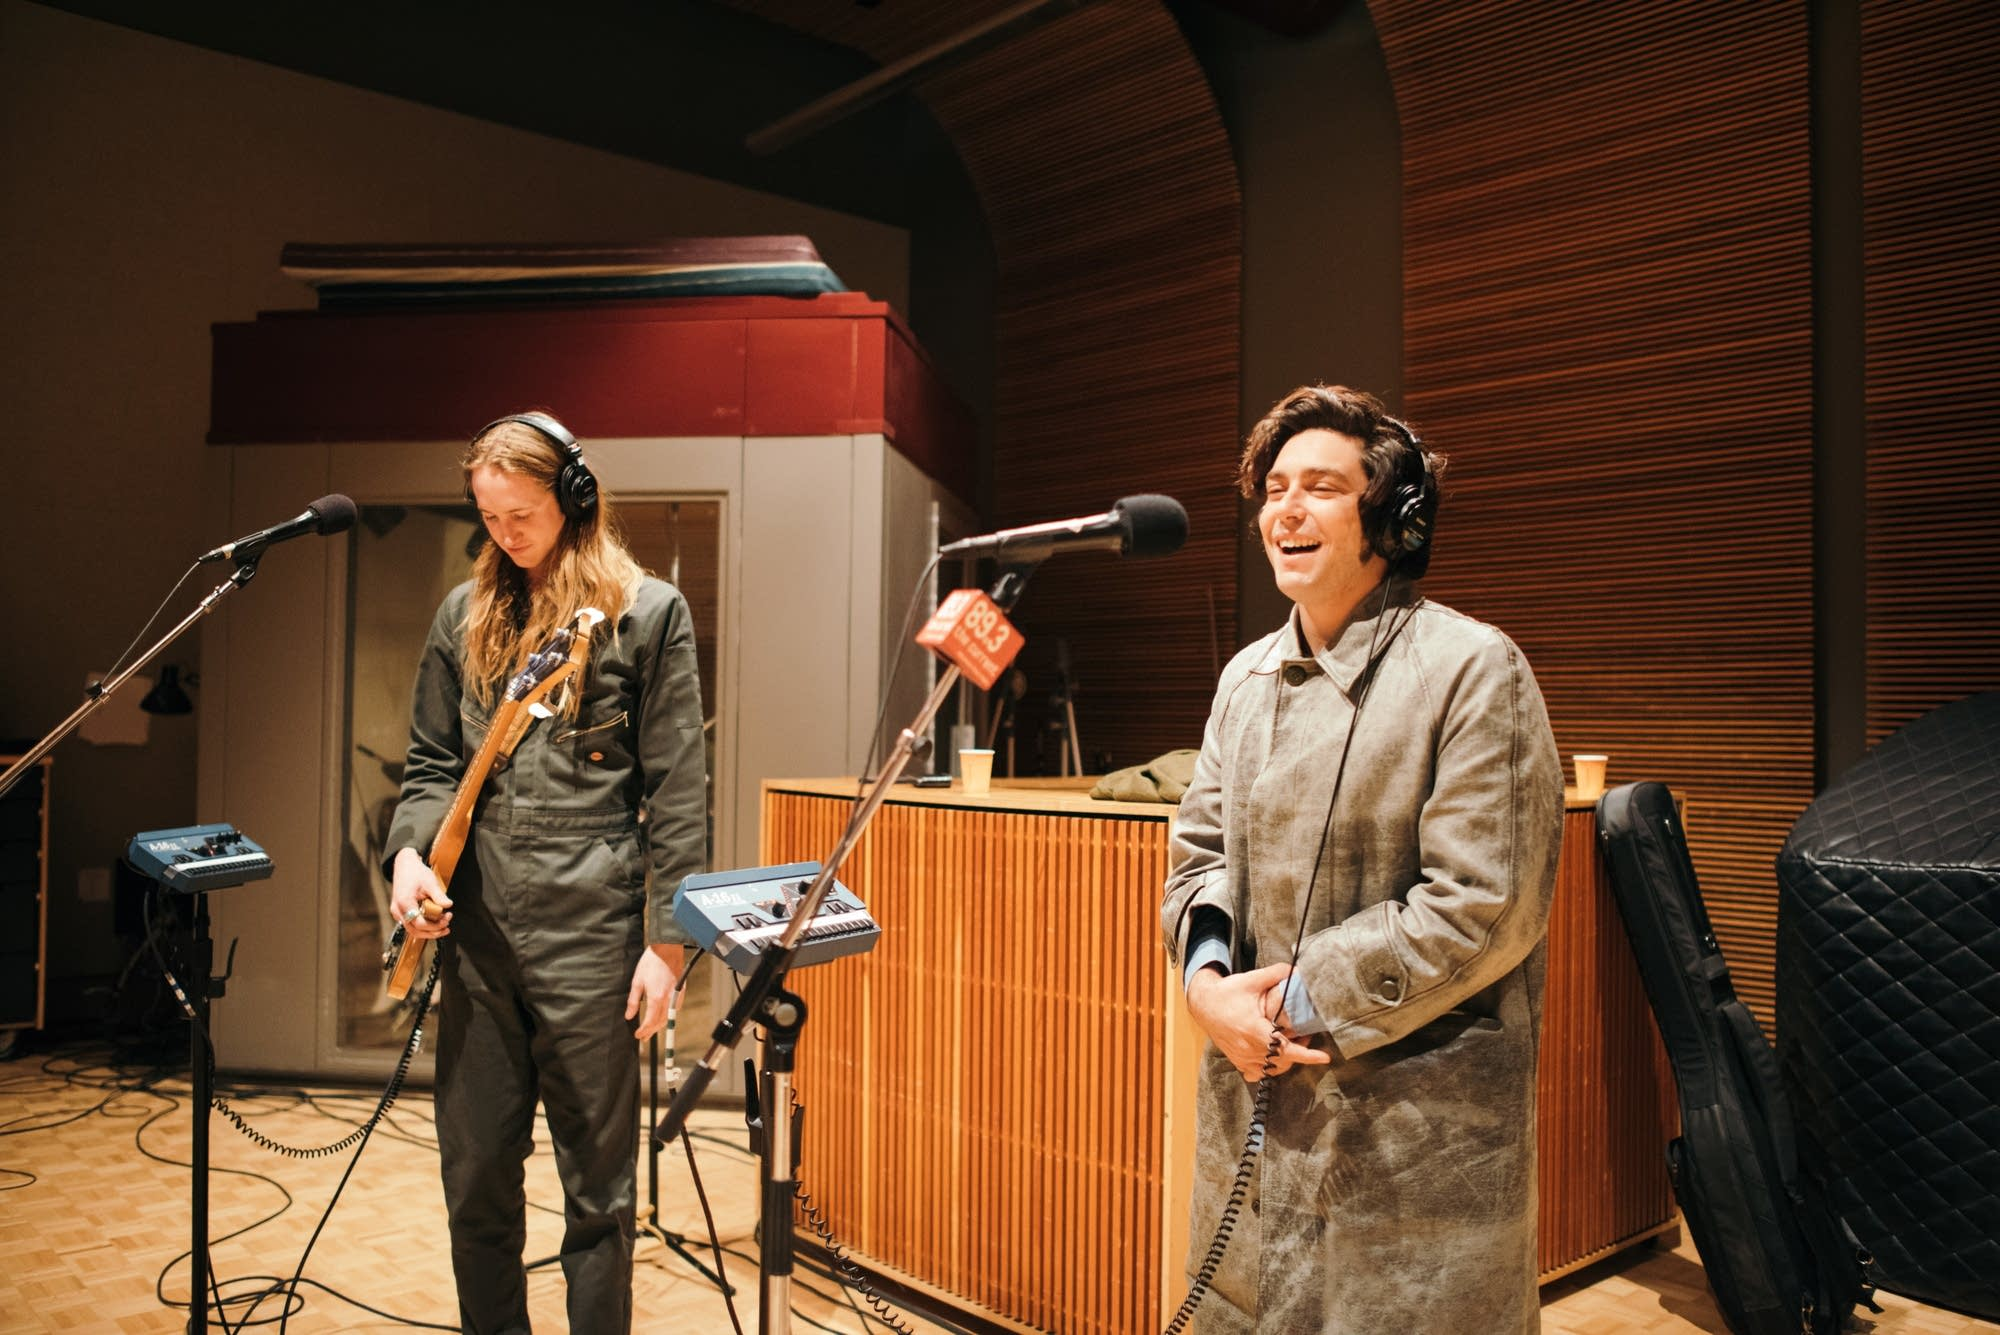 The Growlers perform in The Current studio